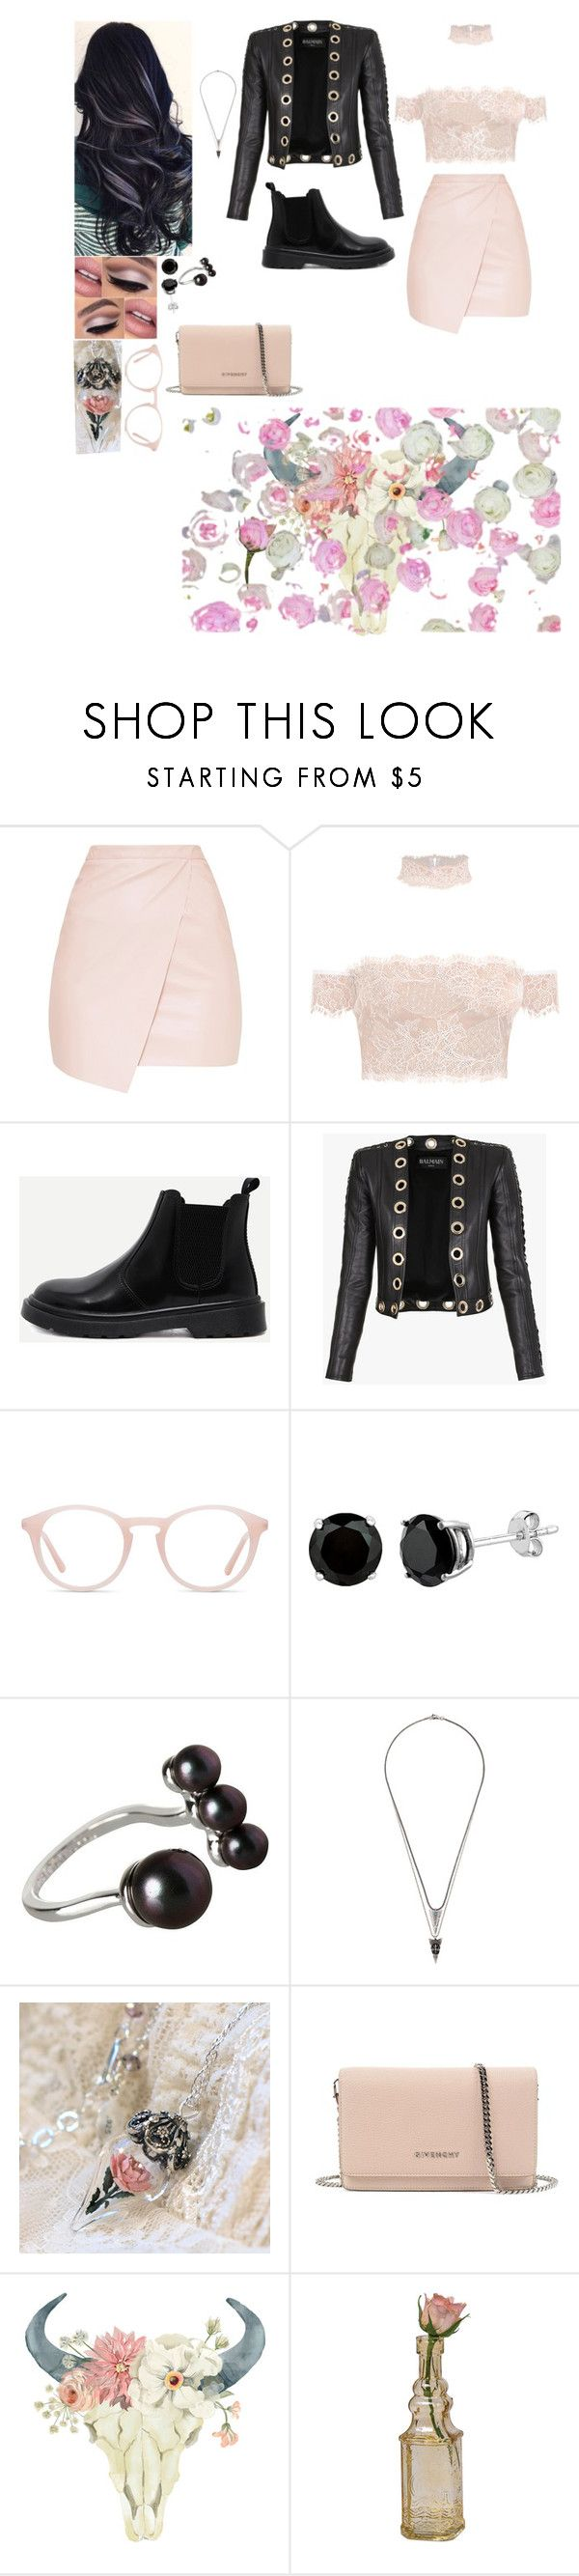 """Outfit"" by gabymyredis ❤ liked on Polyvore featuring Balmain, Ace, BCBGeneration, Topman, Givenchy, WALL and Cultural Intrigue"